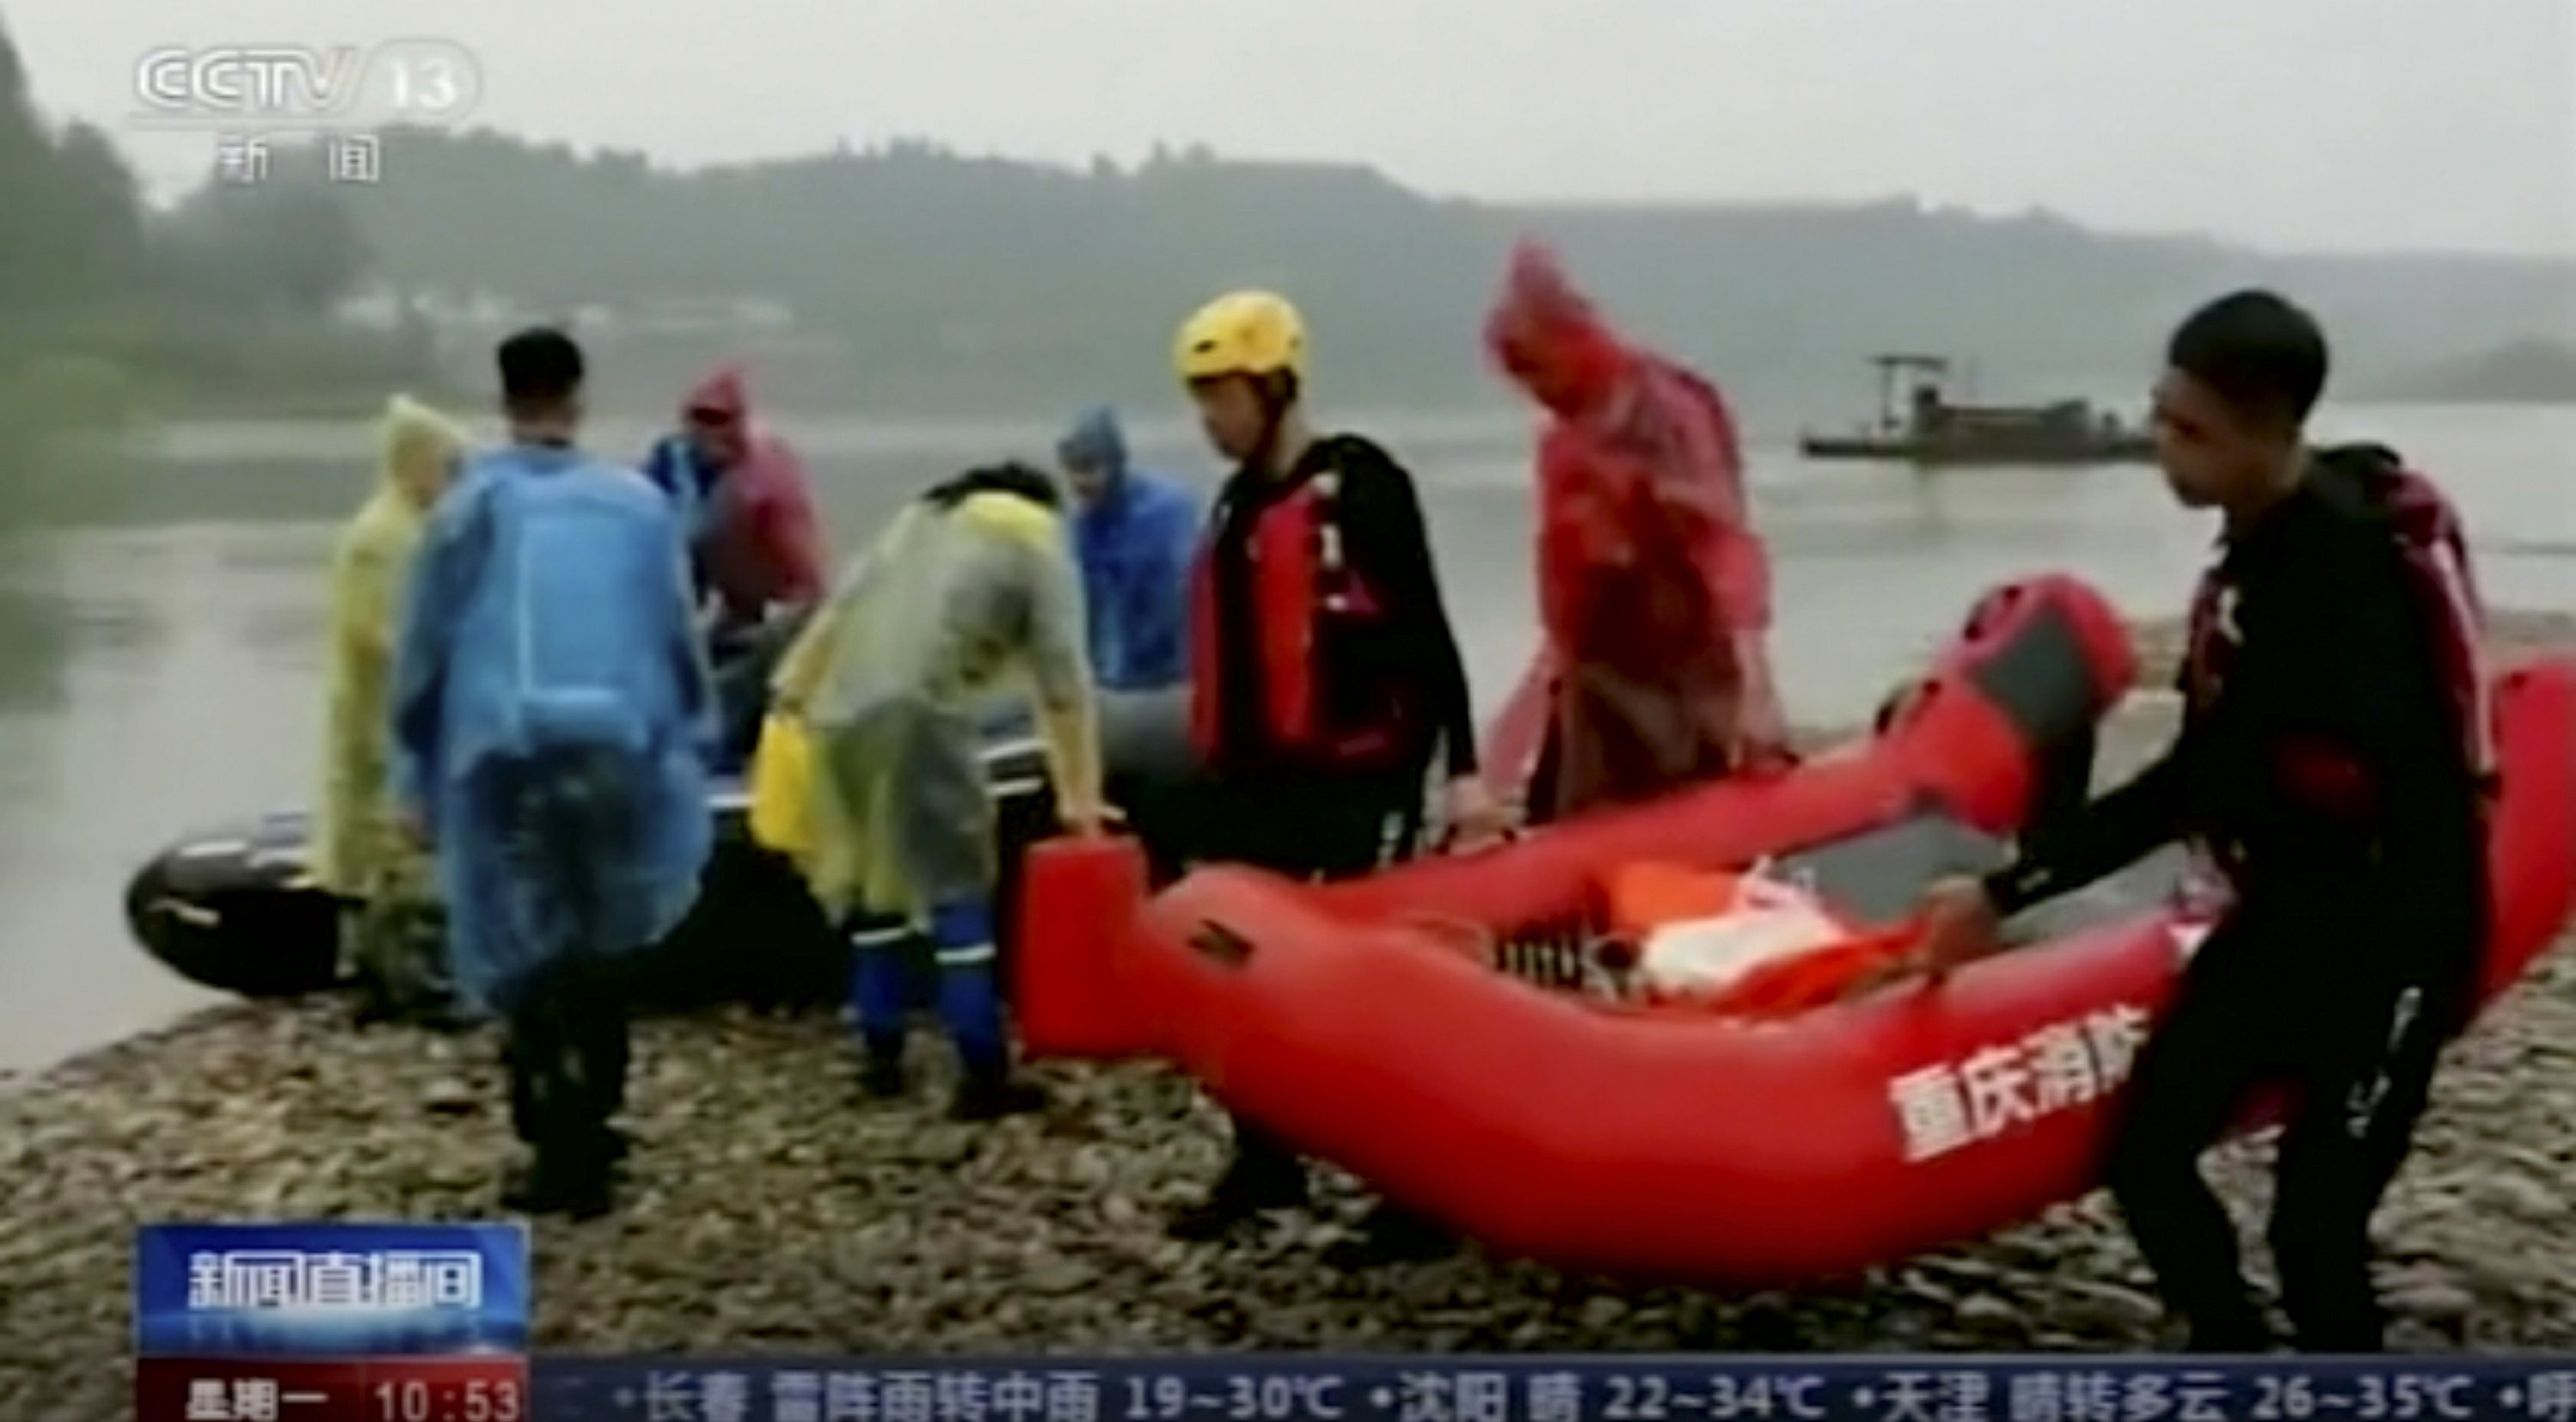 8 young children drown in river in southwestern Chinese city